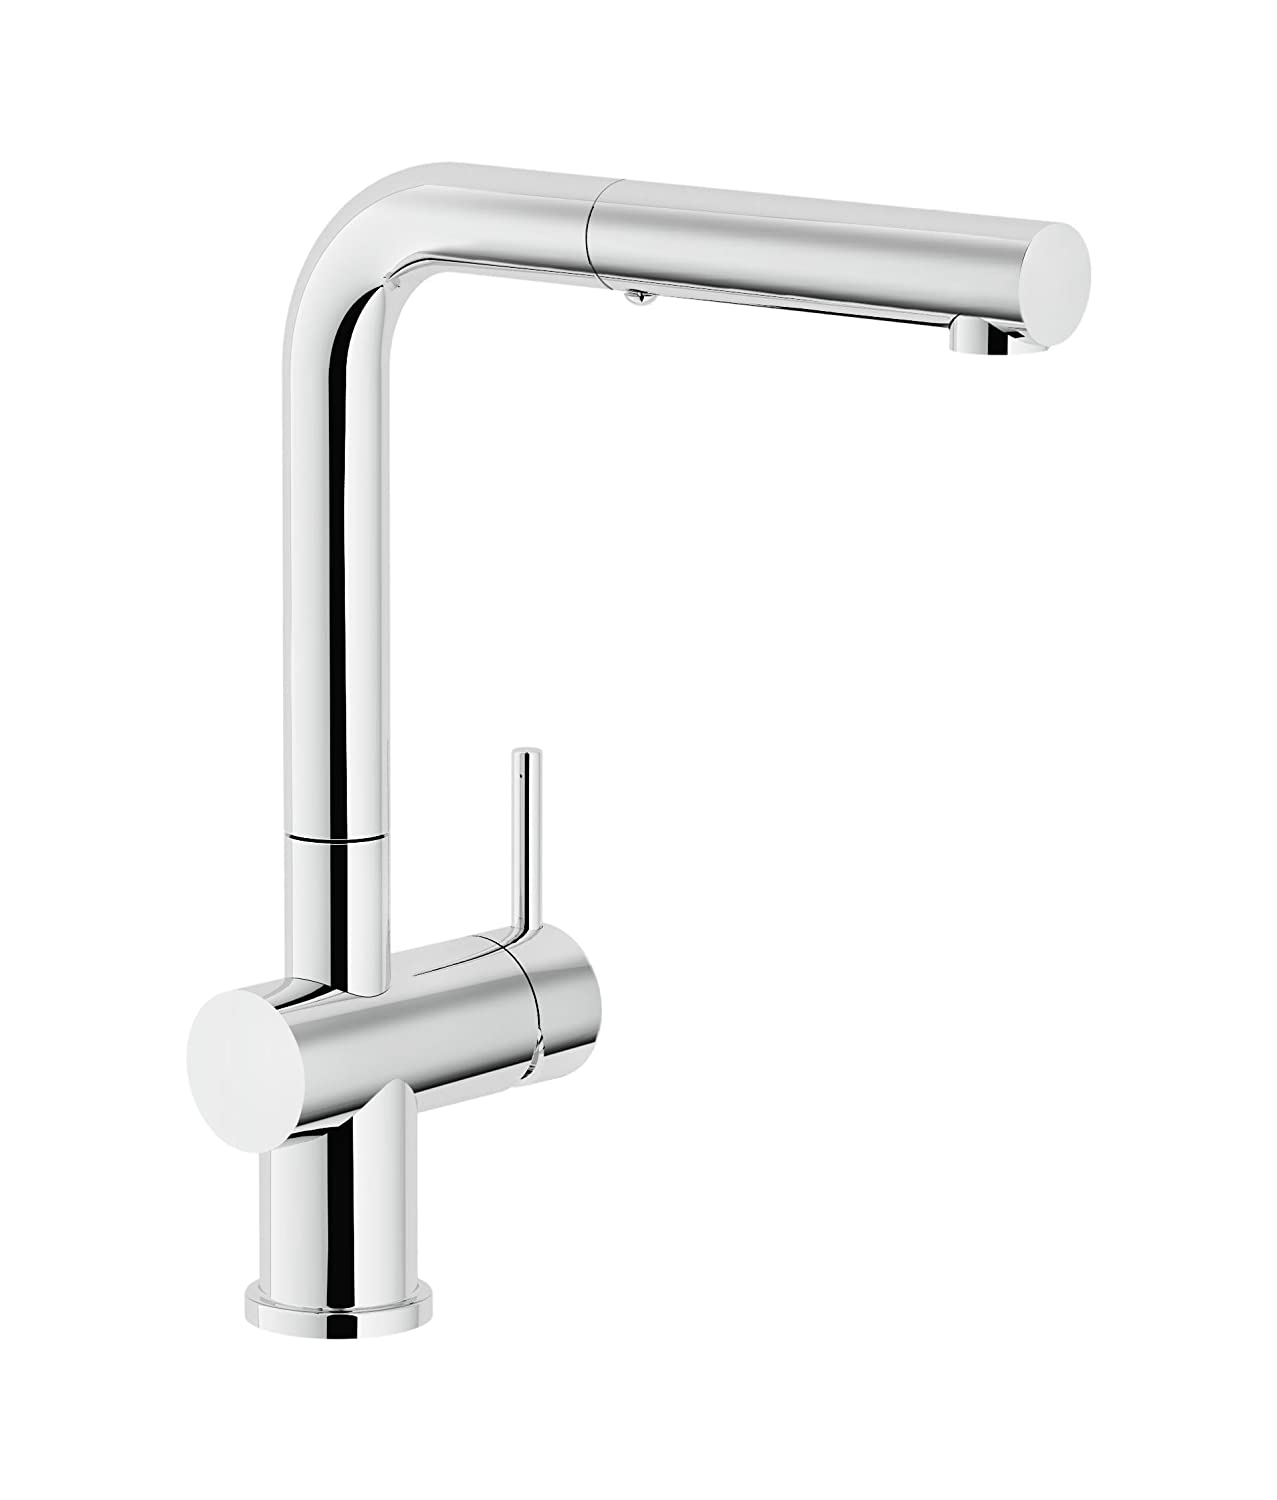 Franke FF3800 Active Single Handle Pull-Out Kitchen Faucet, Chrome ...